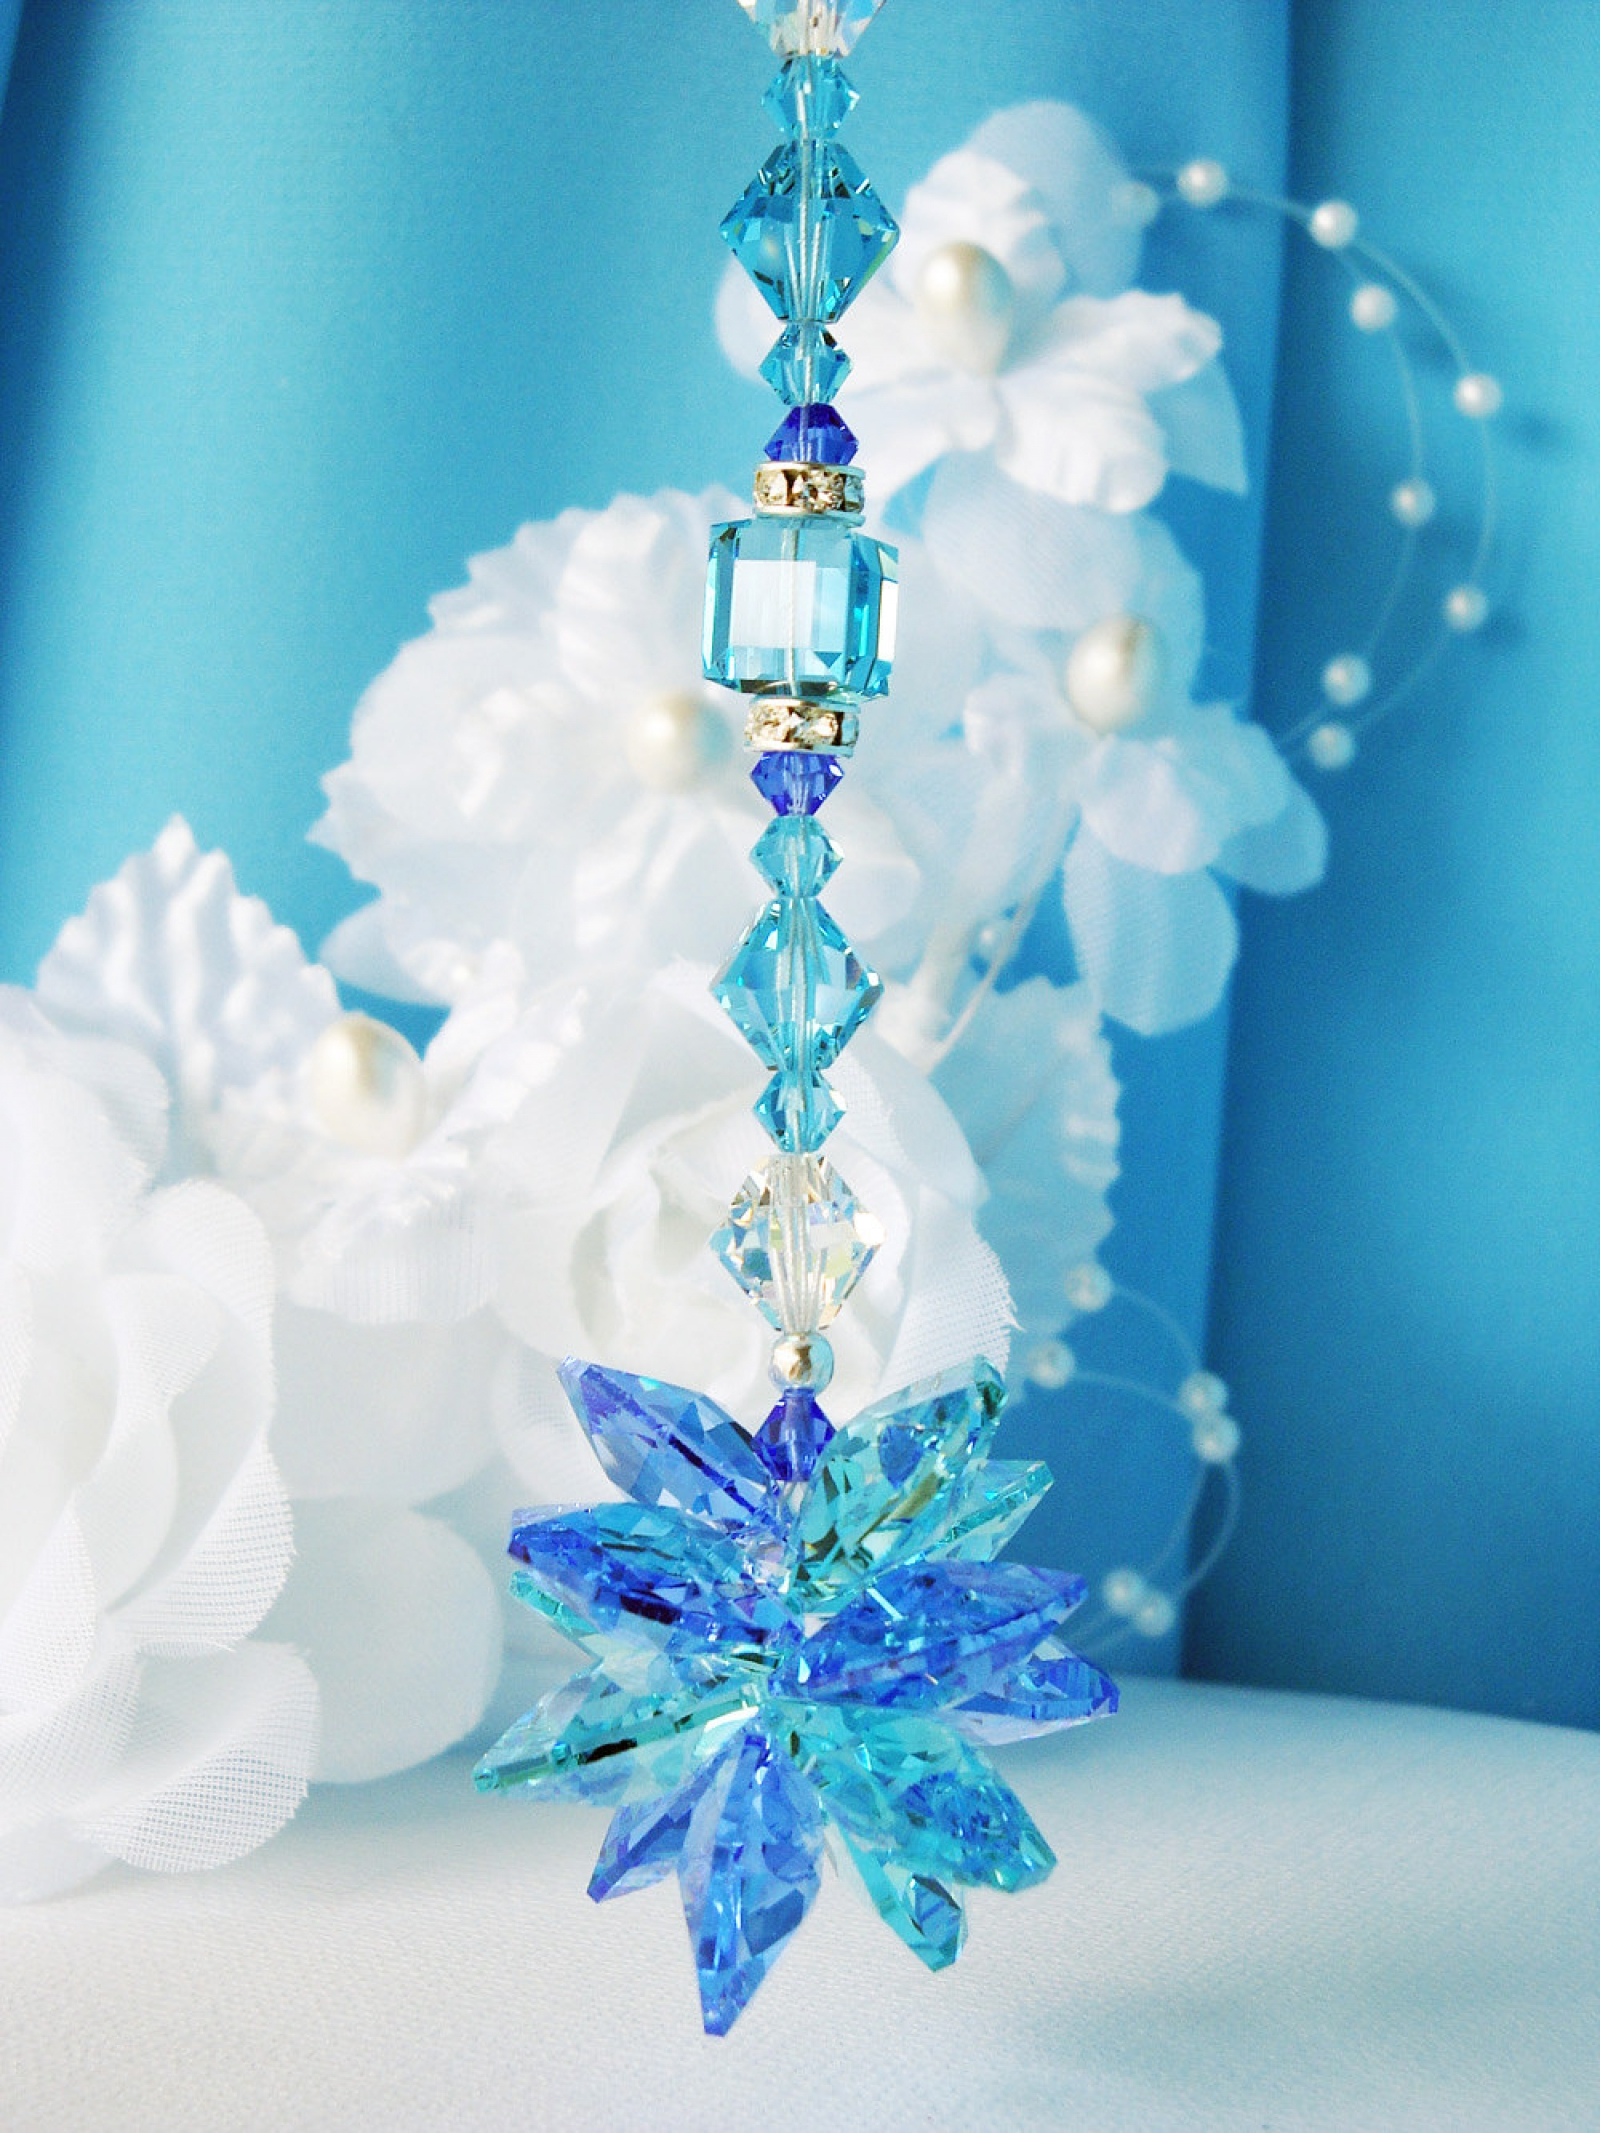 Blue Rear View Mirror Charm Swarovski Crystal Suncatcher